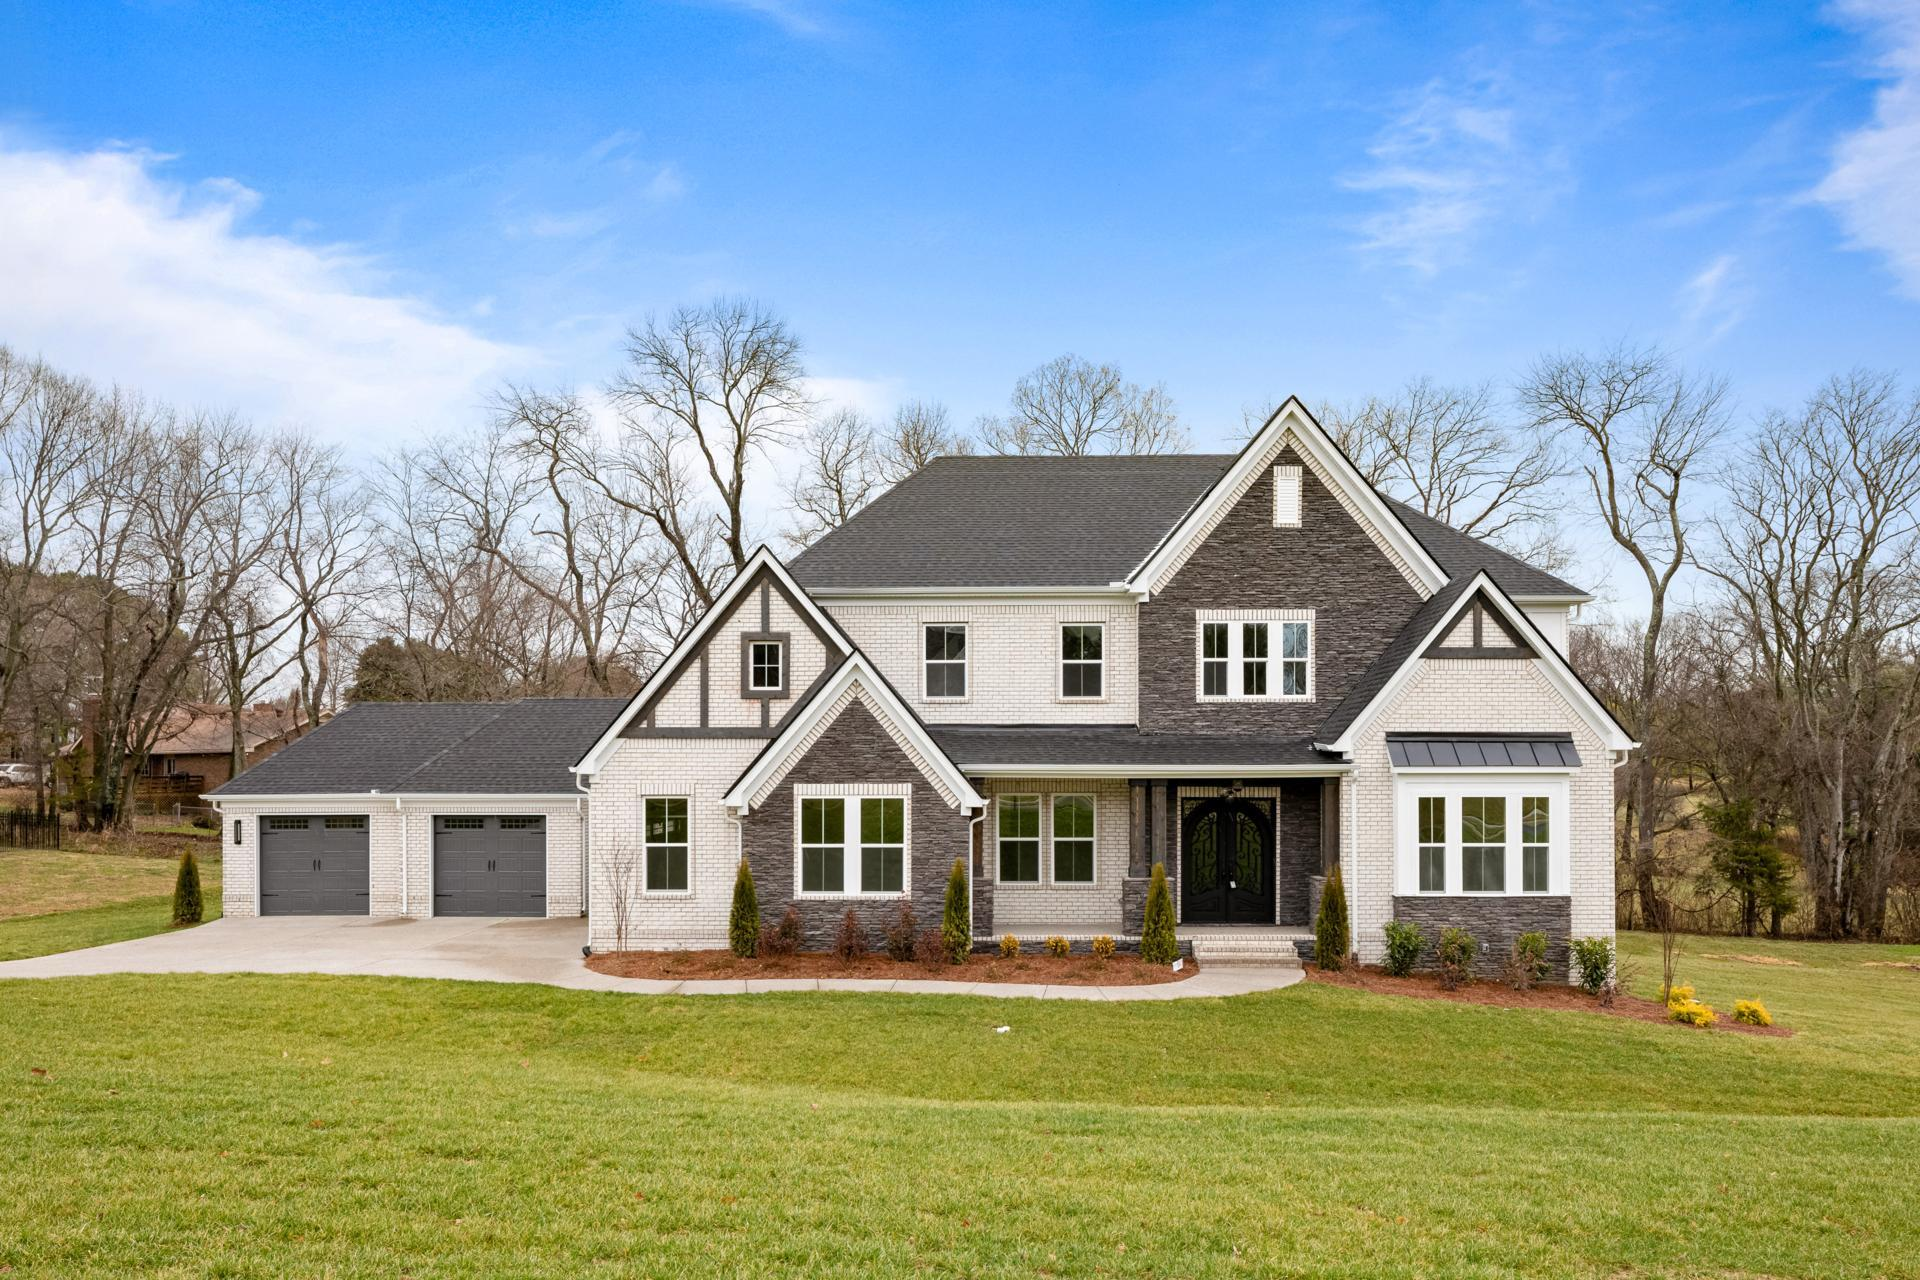 Single Family for Active at Colinas Ii 9402 Arthur Court Nashville, Tennessee 37214 United States